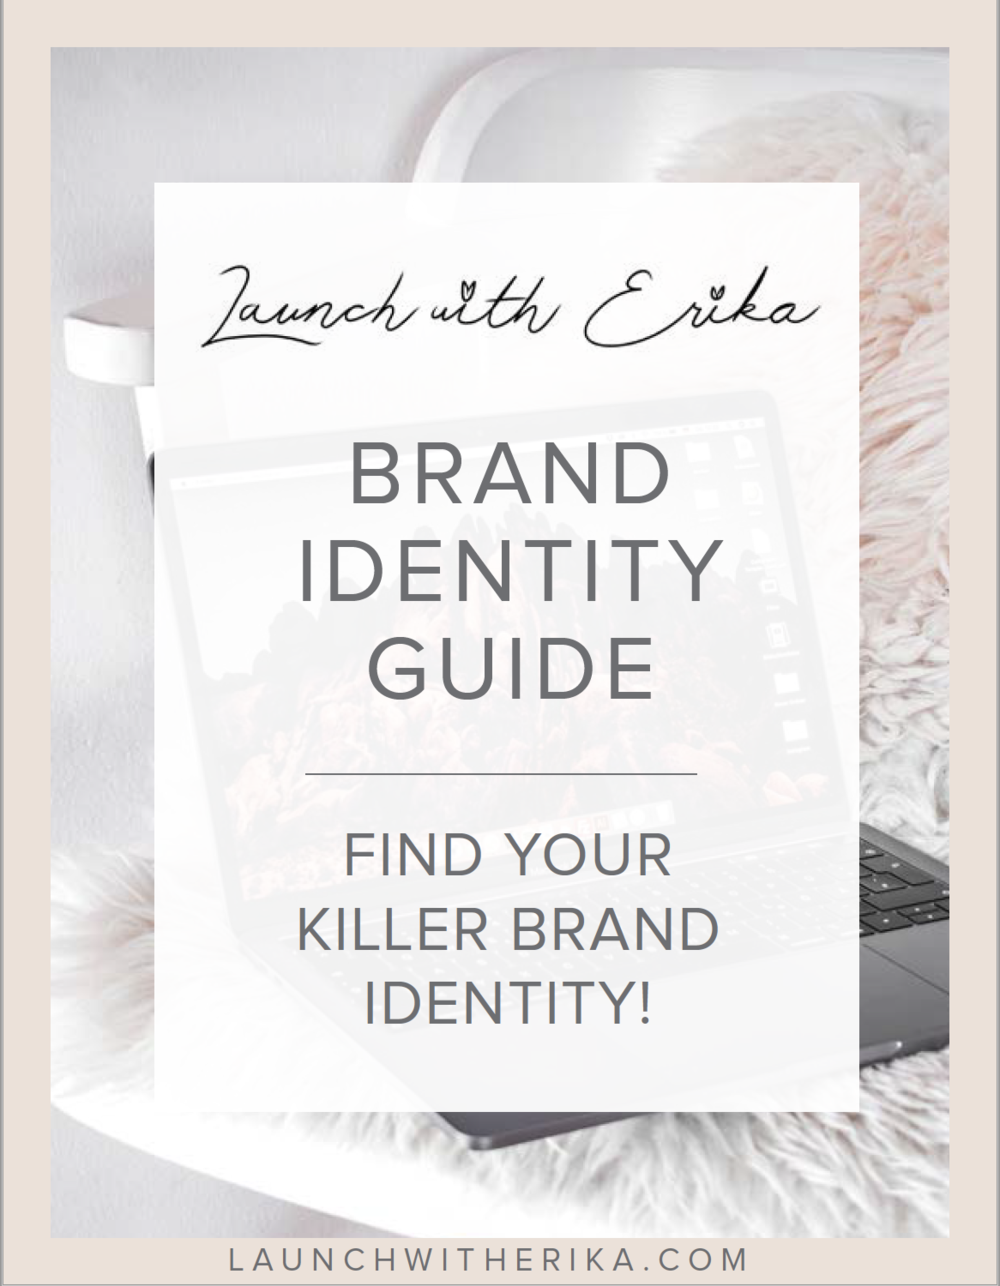 Brand Idenity Guide by Launch with Erika